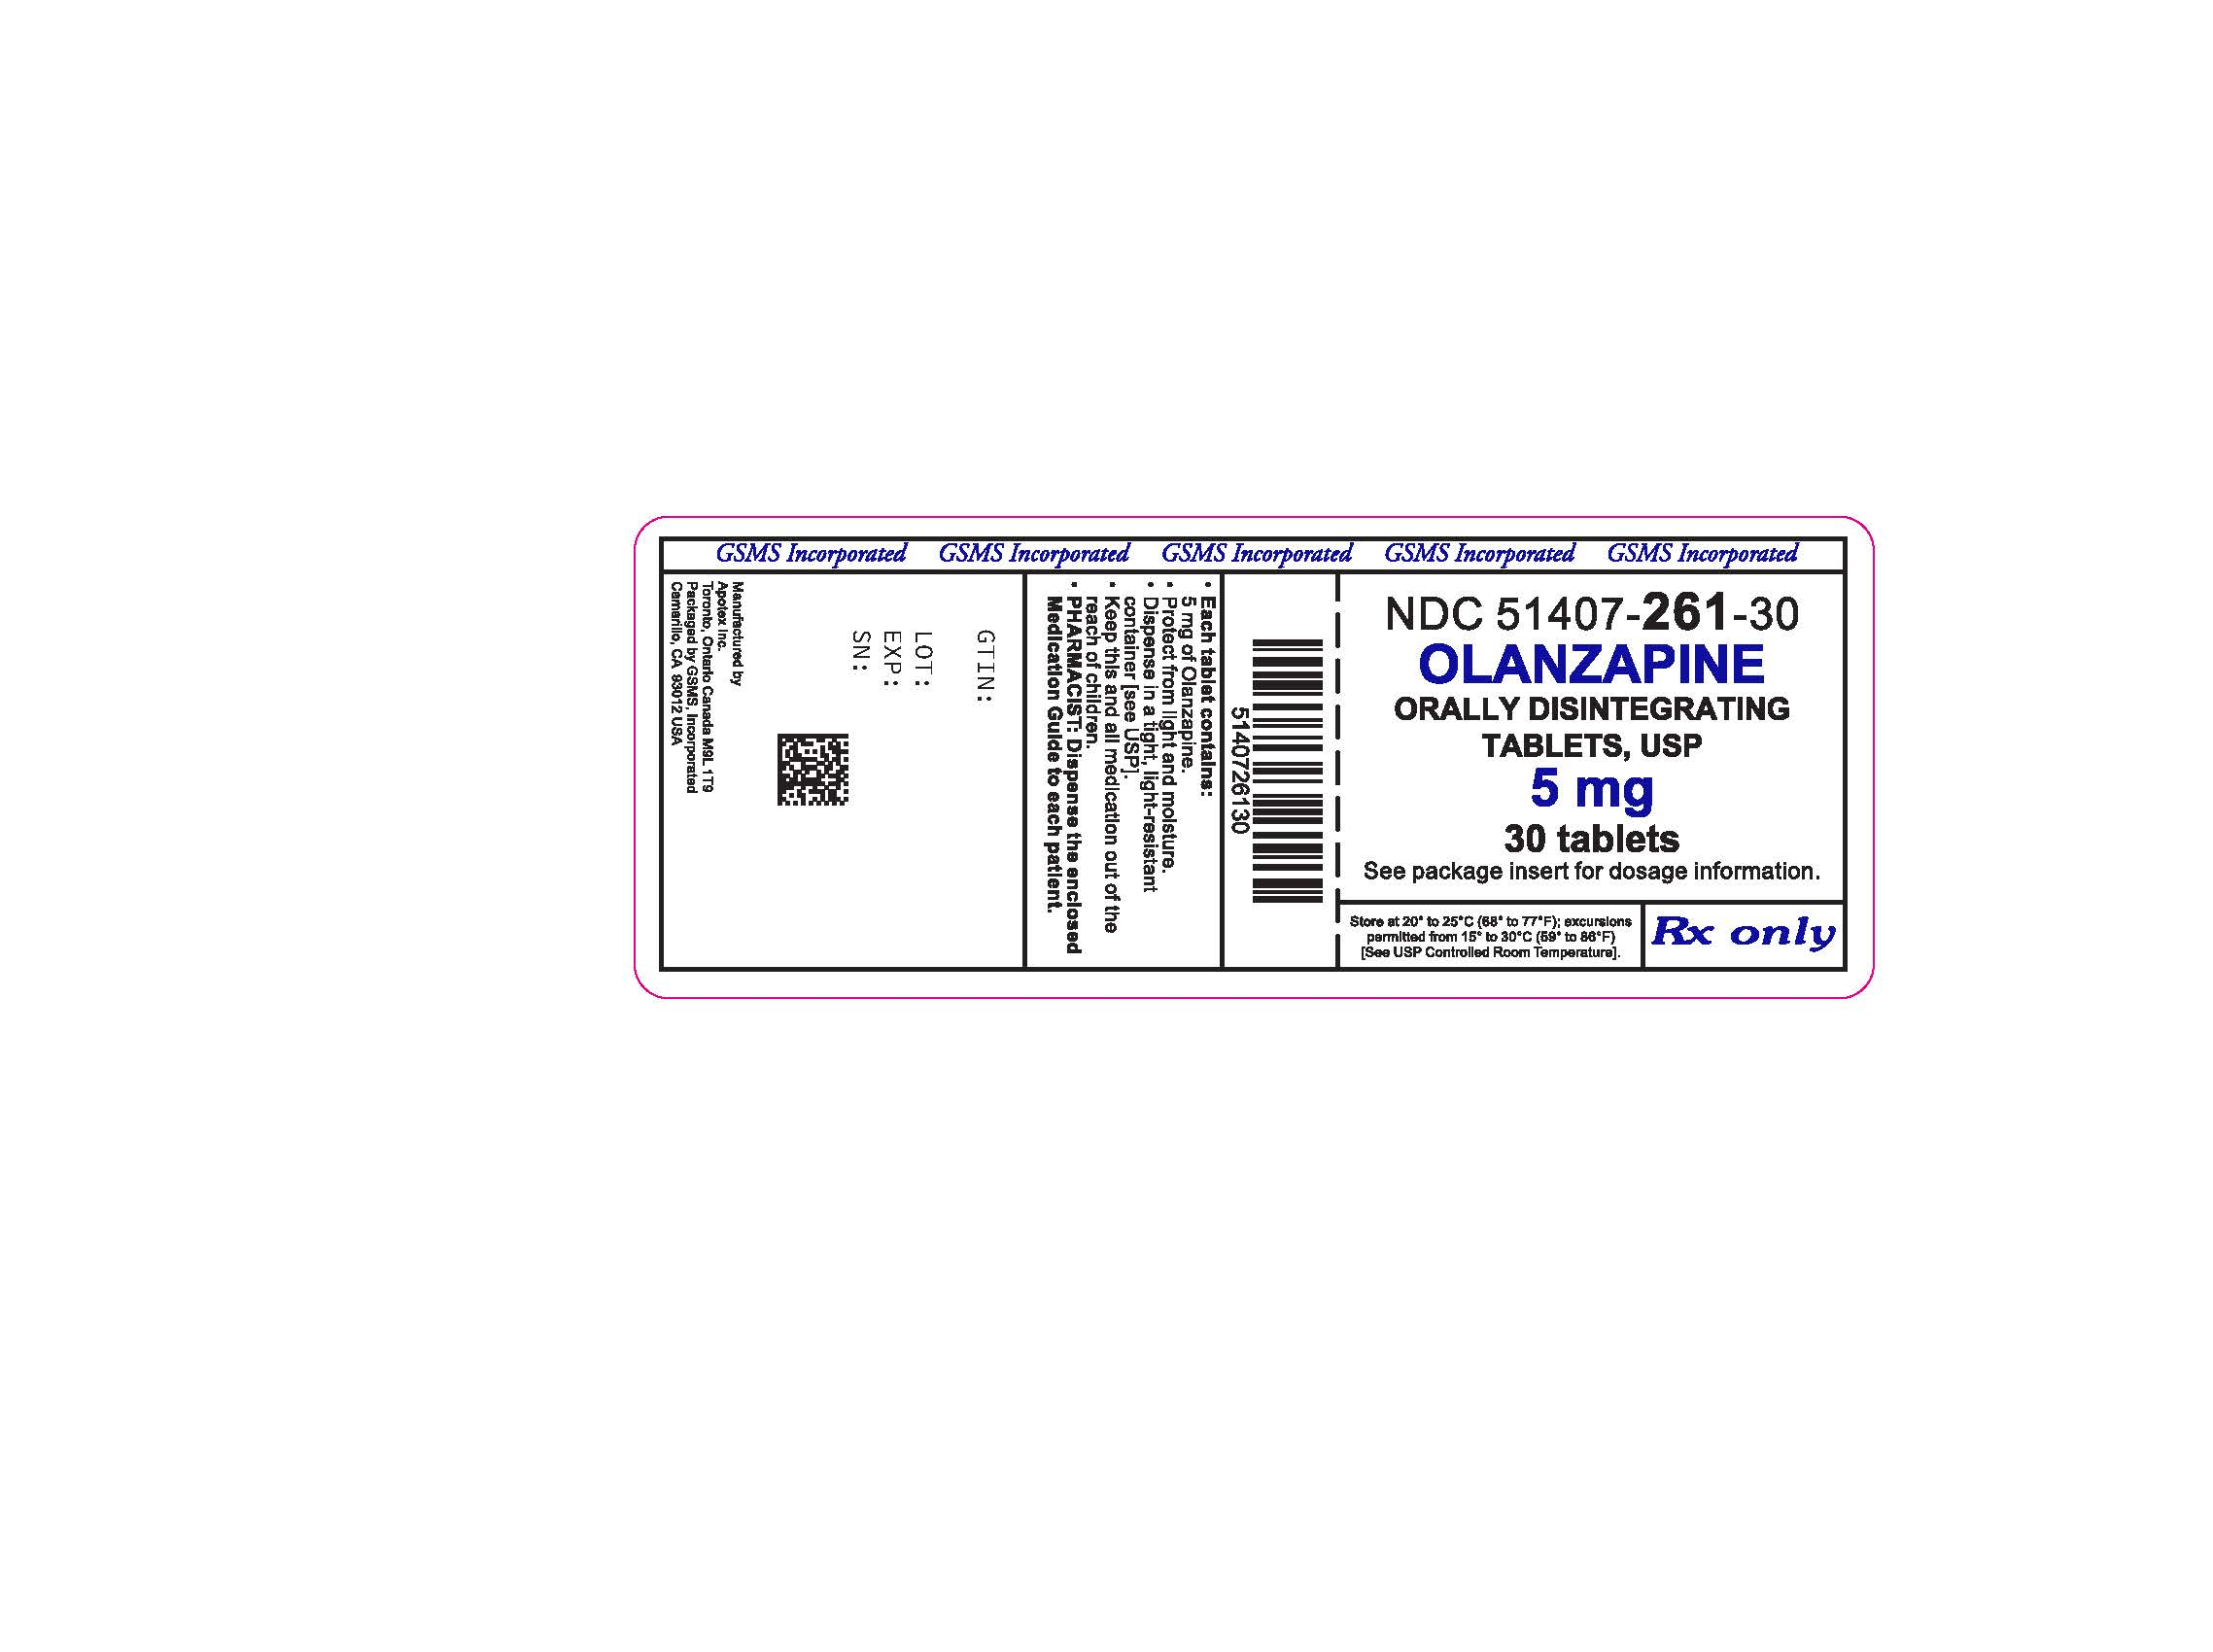 51407-261-30LB OLANZAPINE 5 MG ODT.jpg